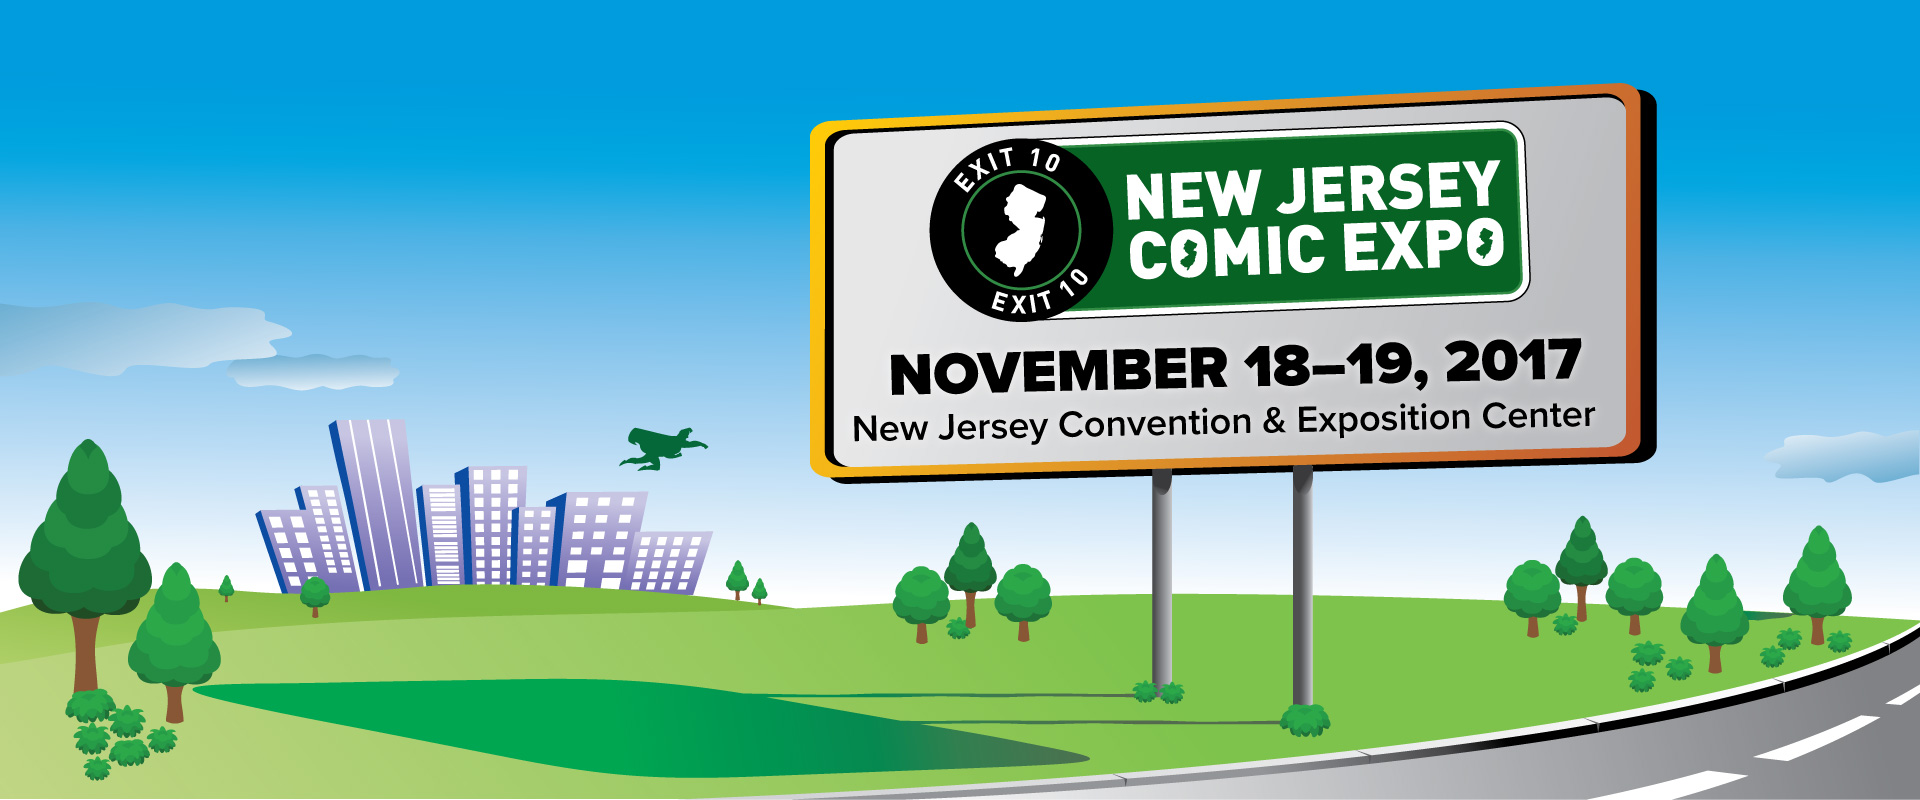 New Jersey Comic Expo at New Jersey Convention and Exposition Center